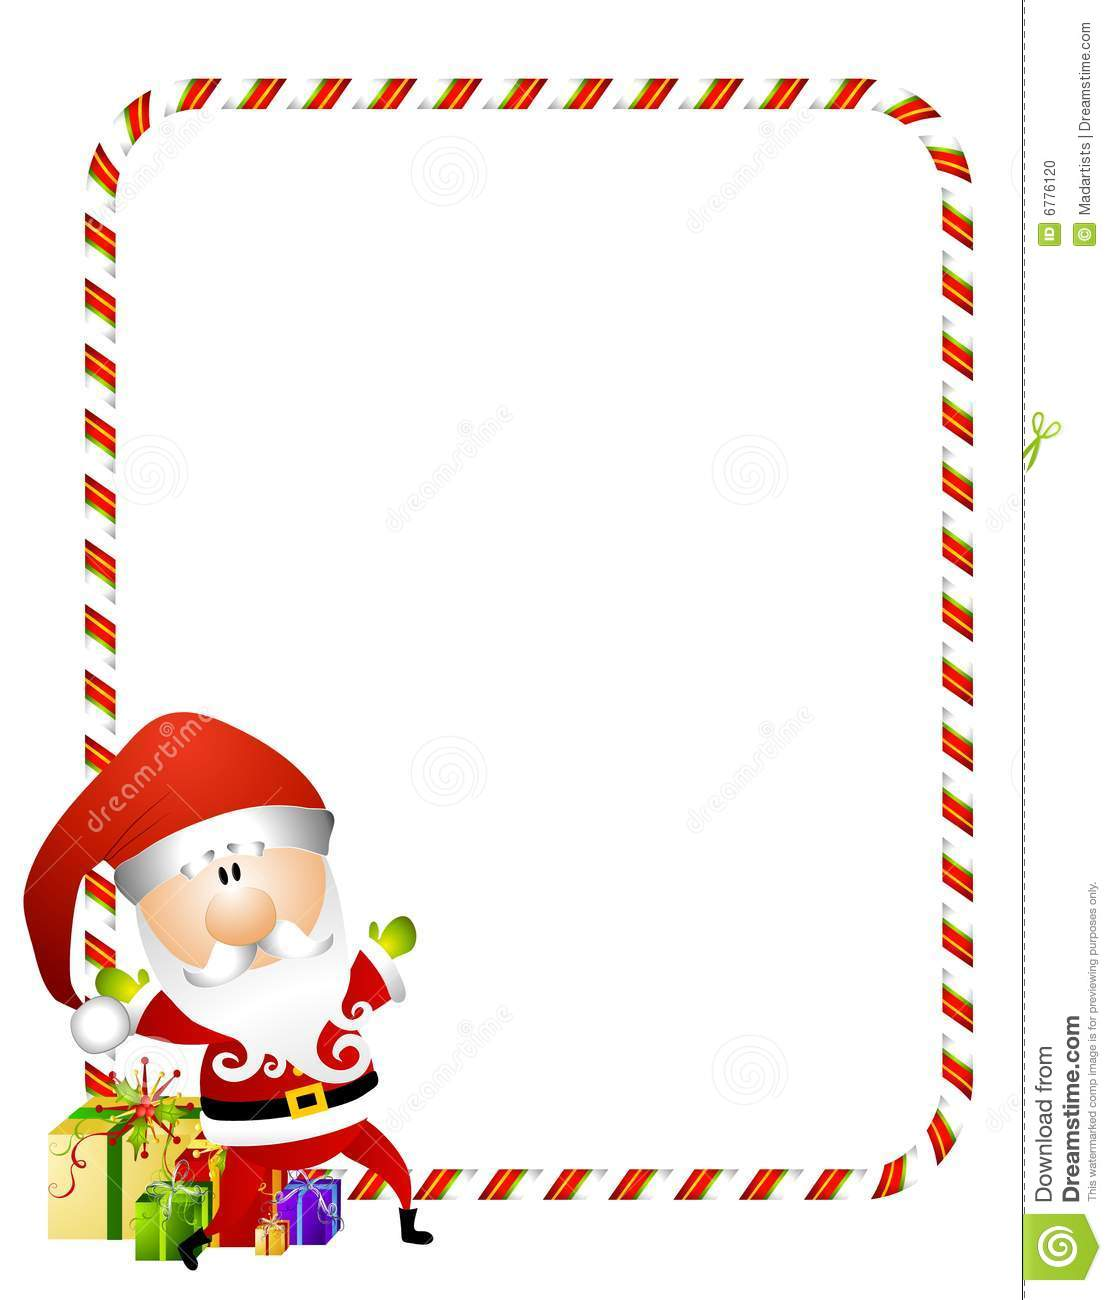 candy cane santa border stock illustration illustration of border rh dreamstime com christmas candy cane border clipart